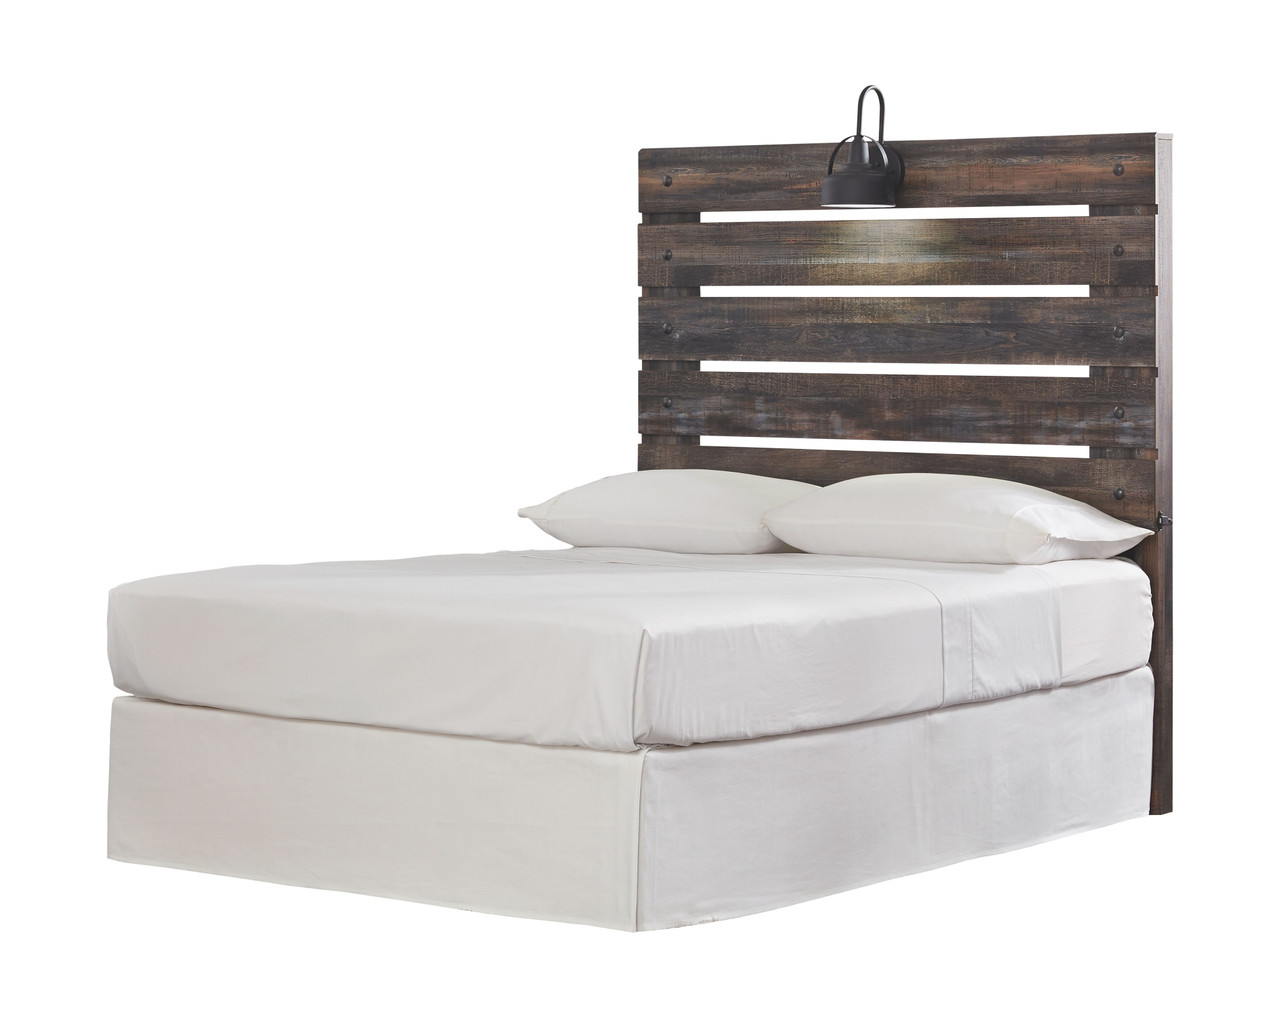 Picture of: Drystan Multi Full Panel Headboard With Bolt On Bed Frame On Sale At American Furniture Of Slidell Serving Slidell La